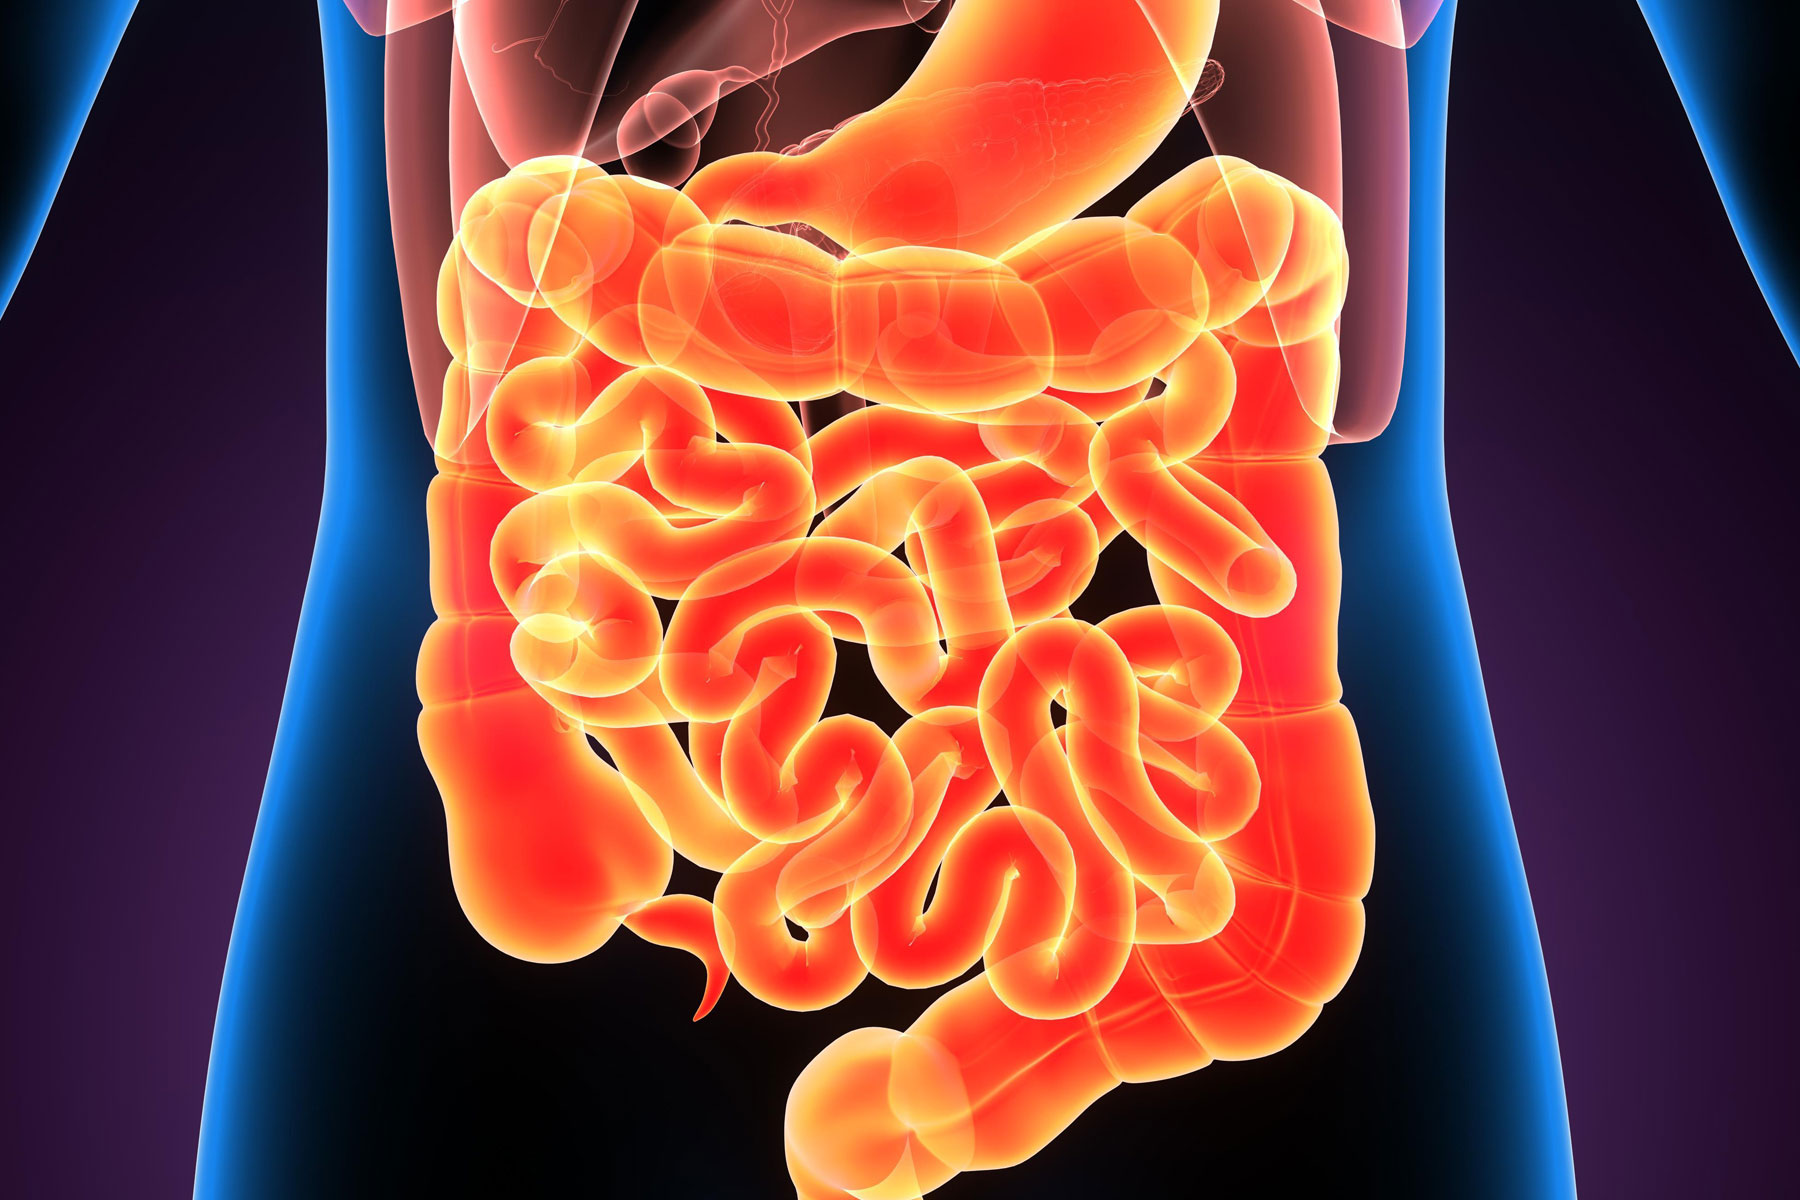 Multi-omics analysis of Inflammatory Bowel Disease patients